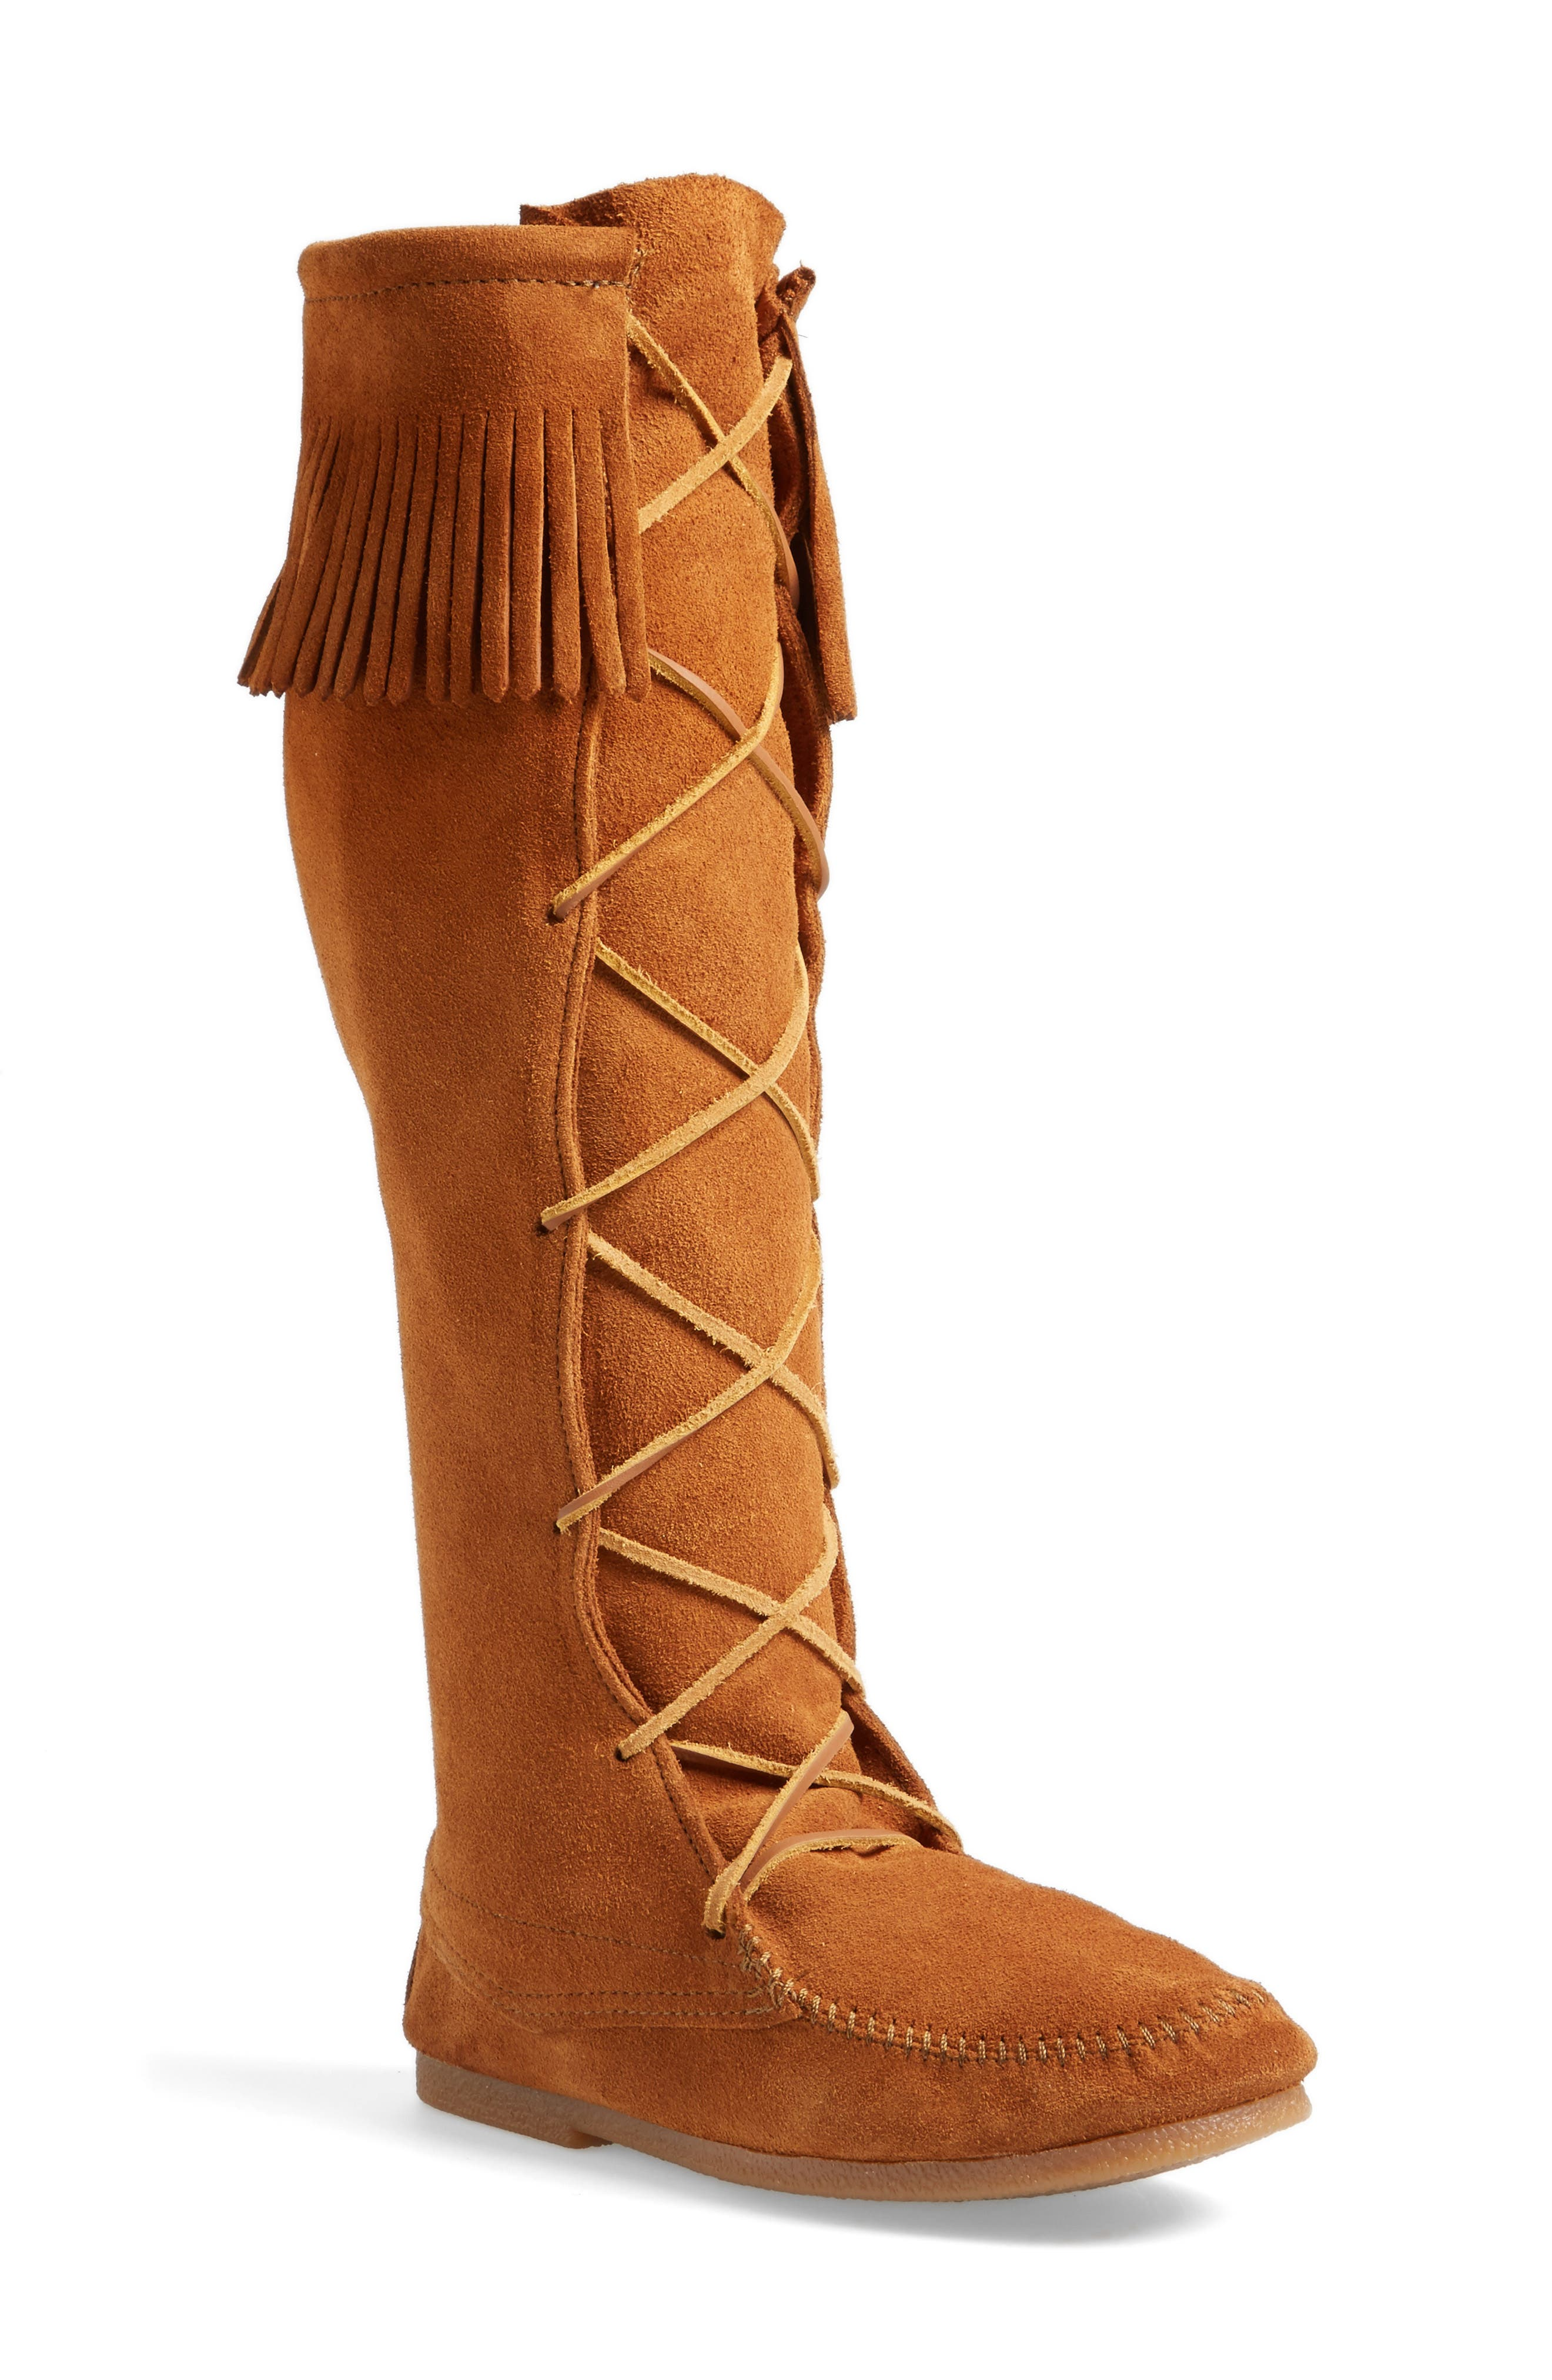 Knee High Moccasin Boot,                         Main,                         color, Brown Suede